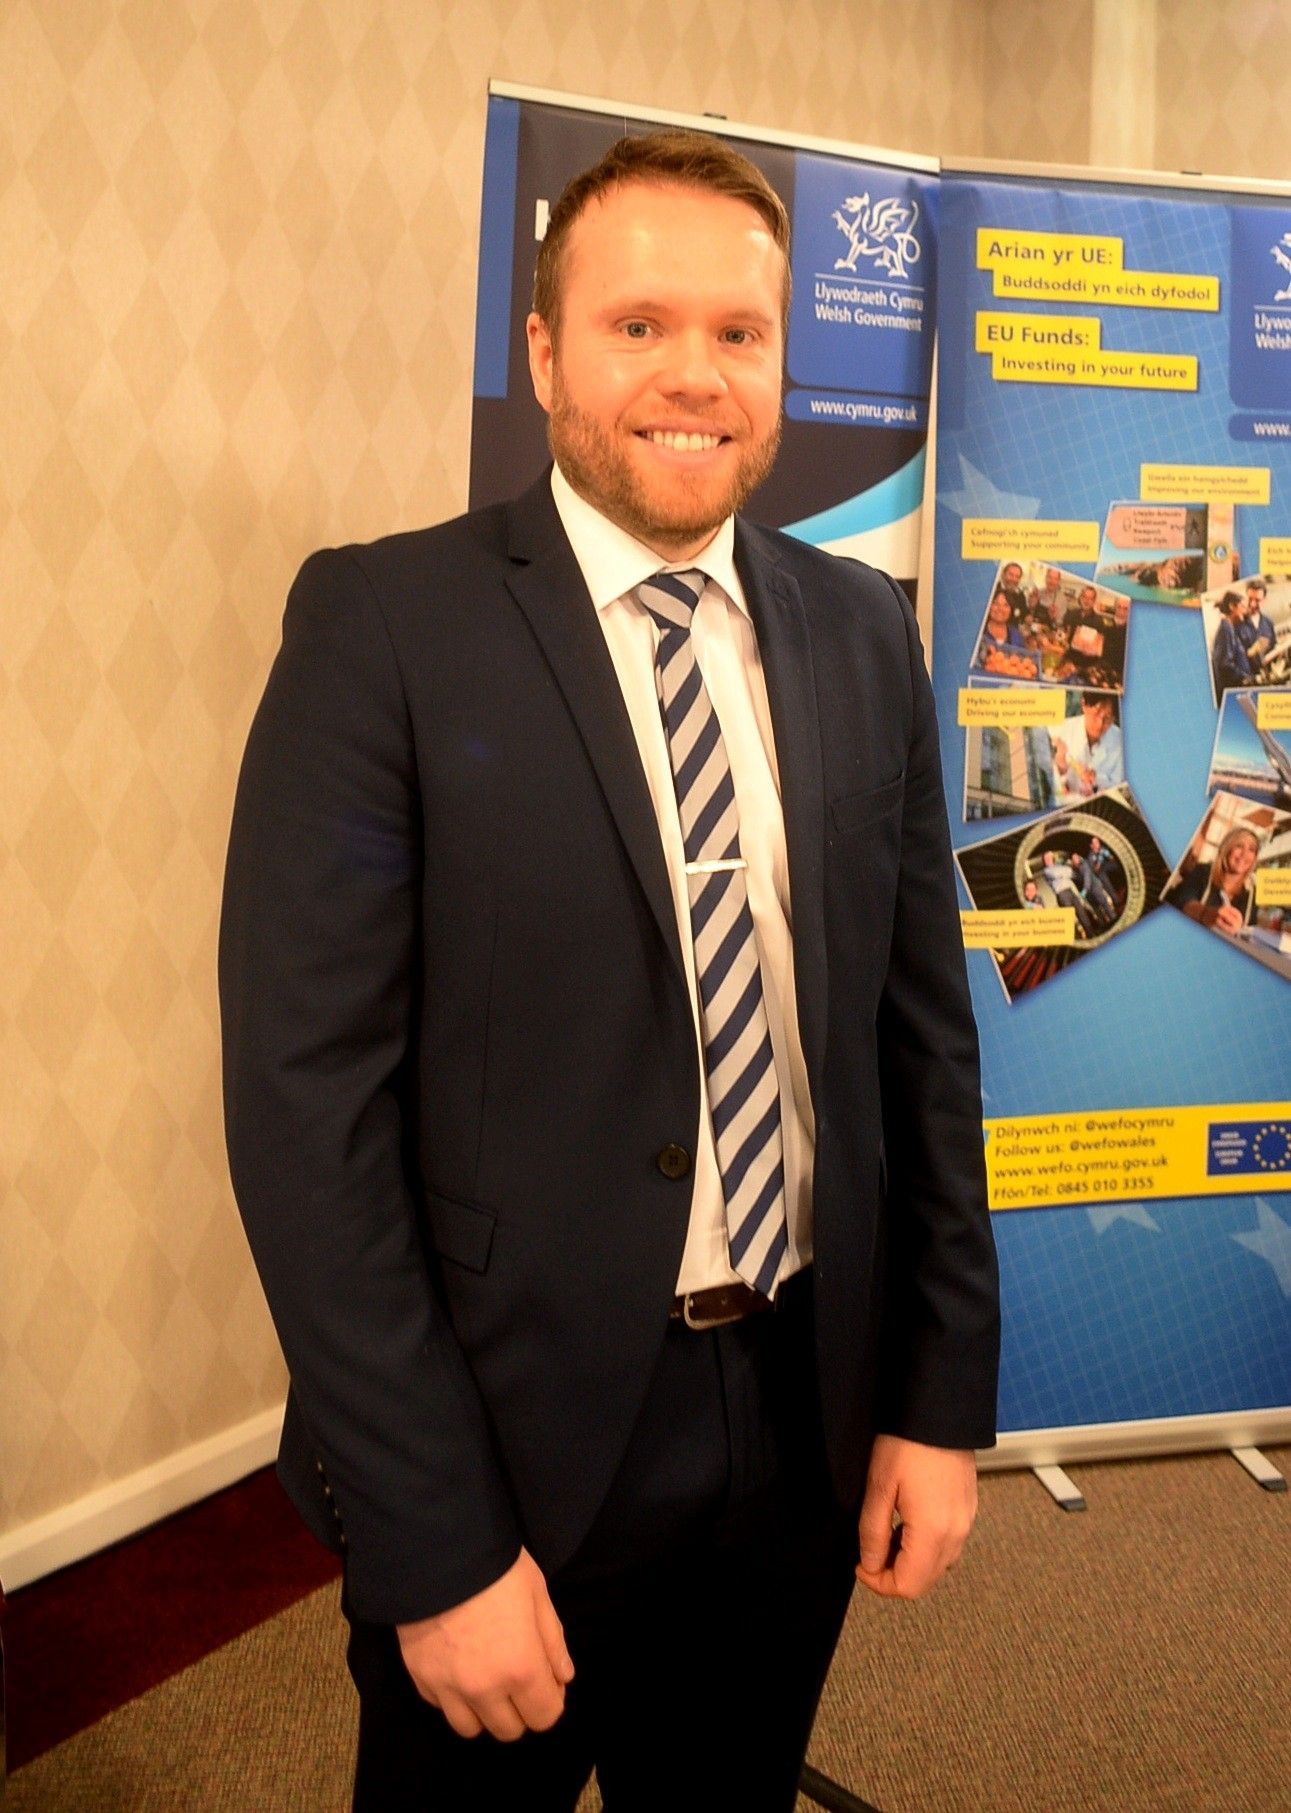 Rhys Waite, Senior Design Engineer at Microsemi, Caldicot based, was delighted with the news the company was getting £400, 000 funding for professional wound care at a Horizon 2020 Event in Cardiff. (18765902)